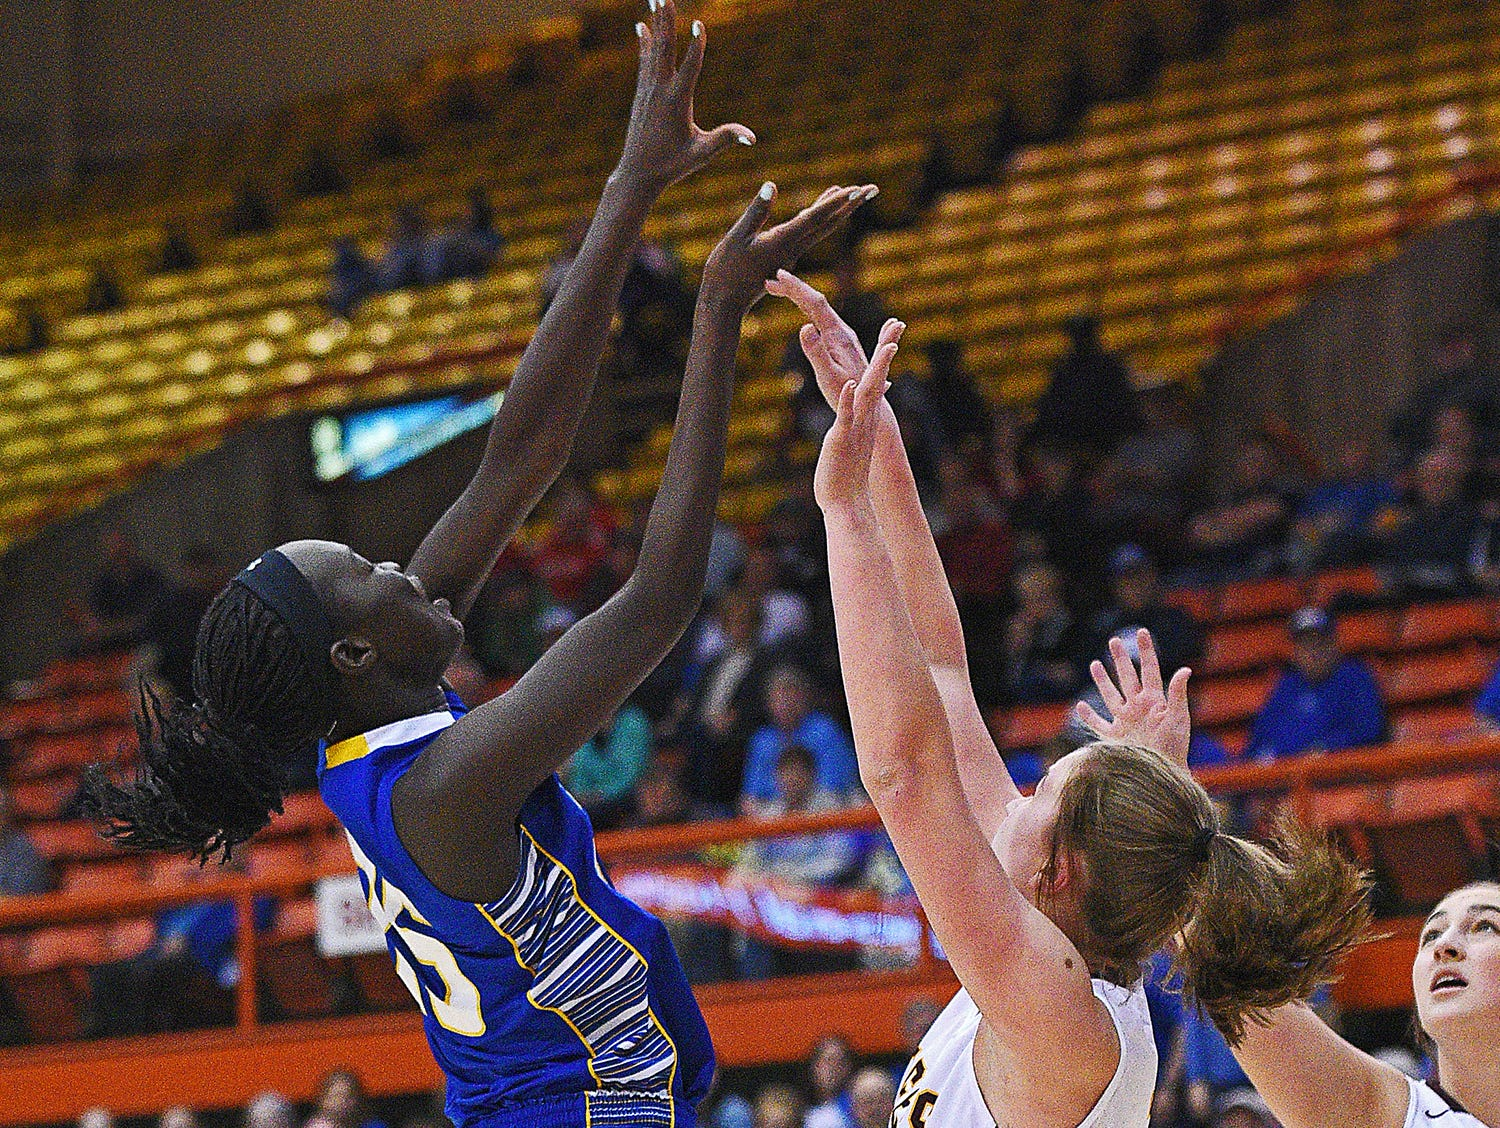 O'Gorman's Sebastian Akoi (35) goes up for a shot over Harrisburg's Jeniah Ugofsky (30) during the 2017 SDHSAA Class AA State Girls Basketball championship game Saturday, March 18, 2017, at Rushmore Plaza Civic Center in Rapid City.